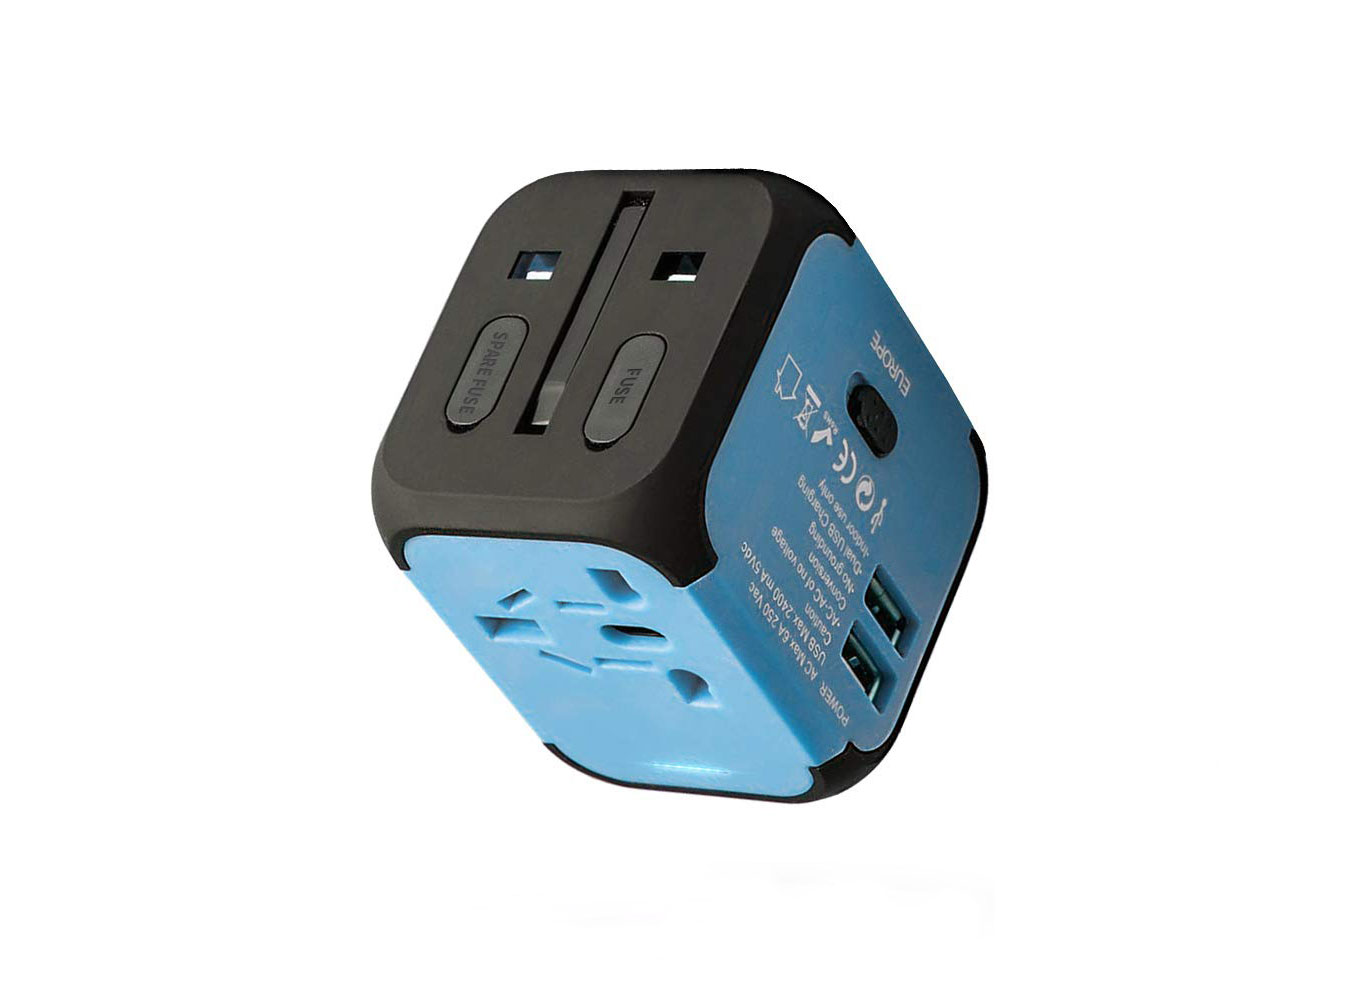 All-in-One Worldwide Travel Adapter